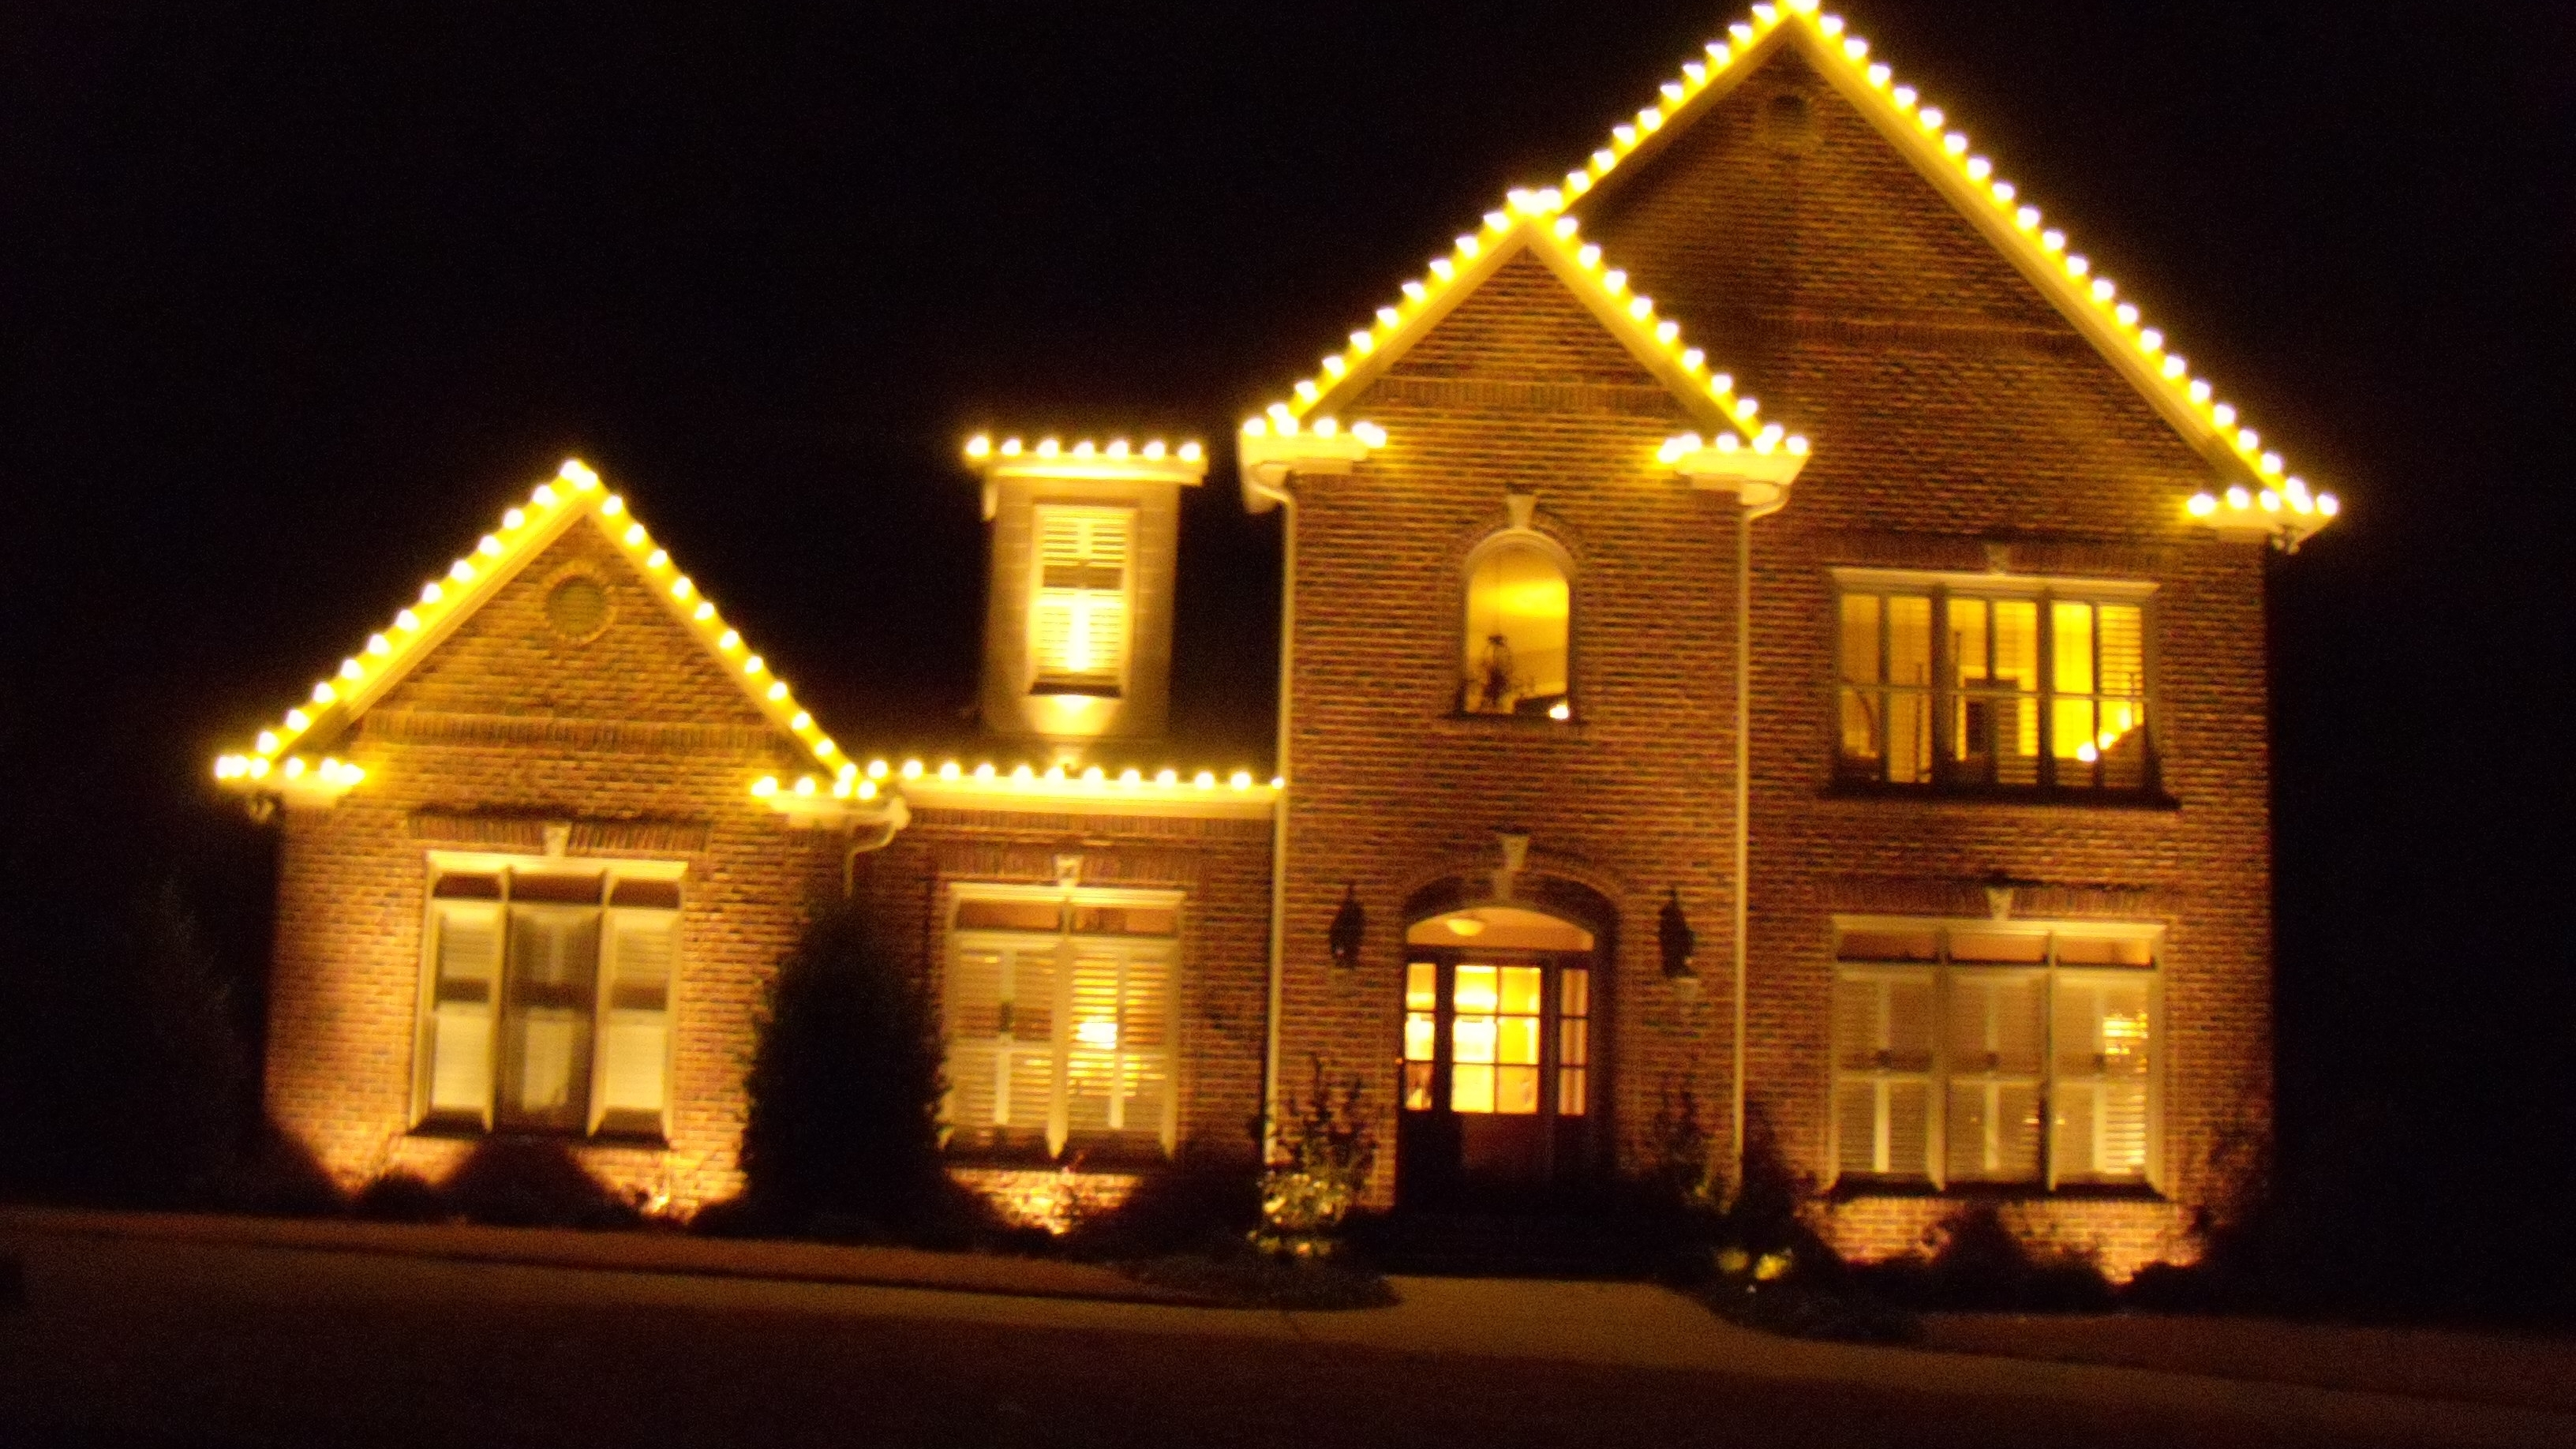 Outdoor Lighting Light Ideas Battery Operated Rope Lights Led Patio intended for Outdoor Xmas Lanterns (Image 15 of 20)